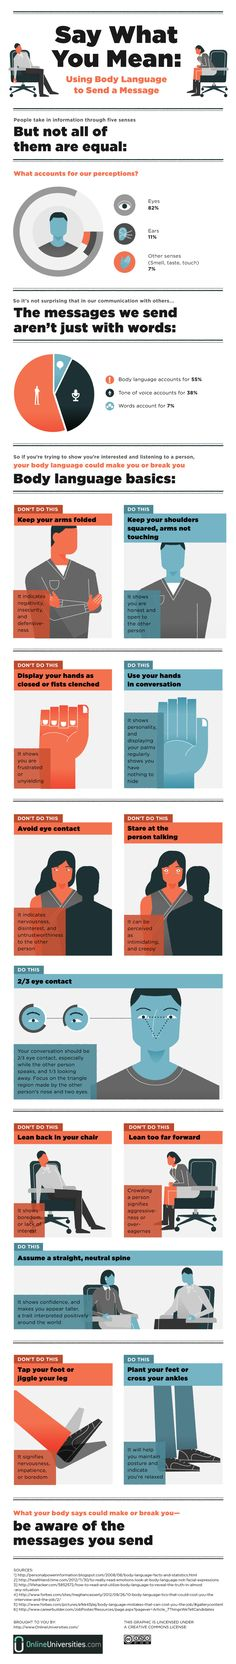 body language infographic